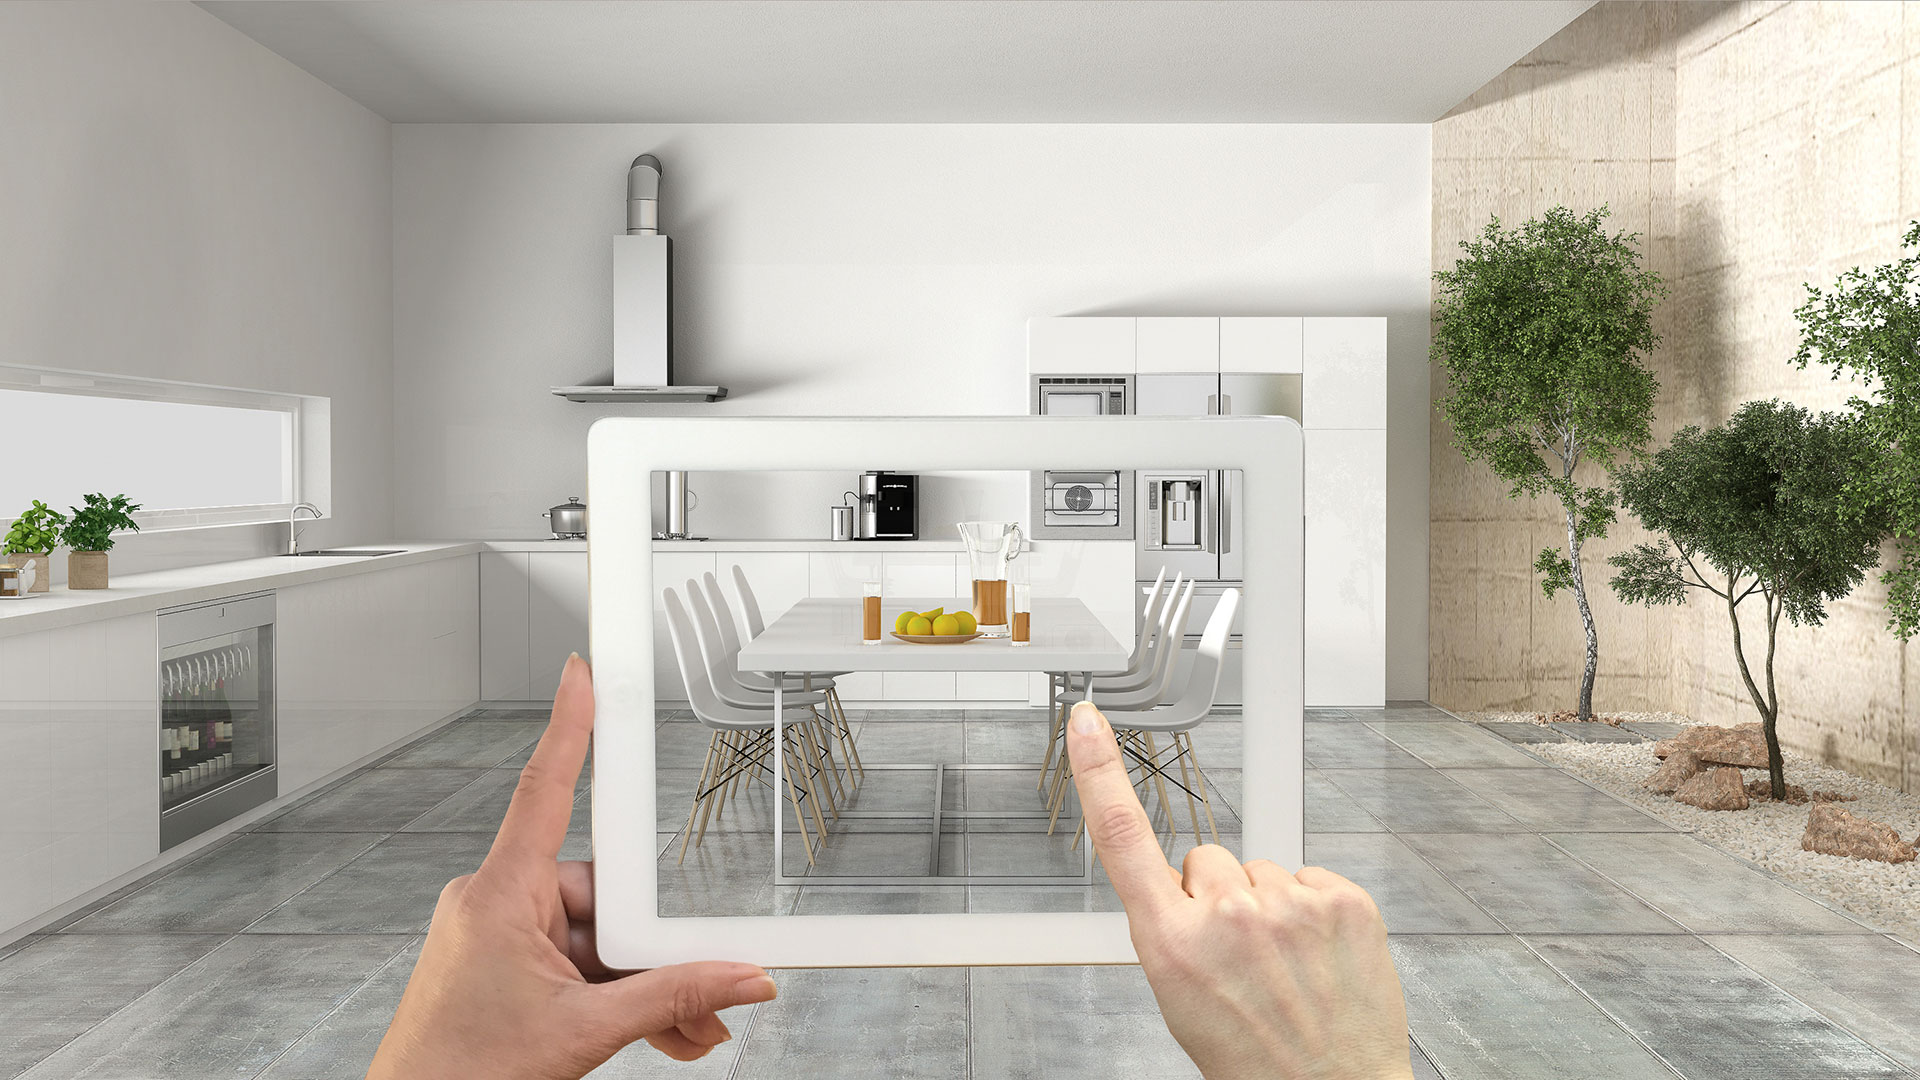 A Lady Trying Ecommerce AR Solutions for Her Kitchen